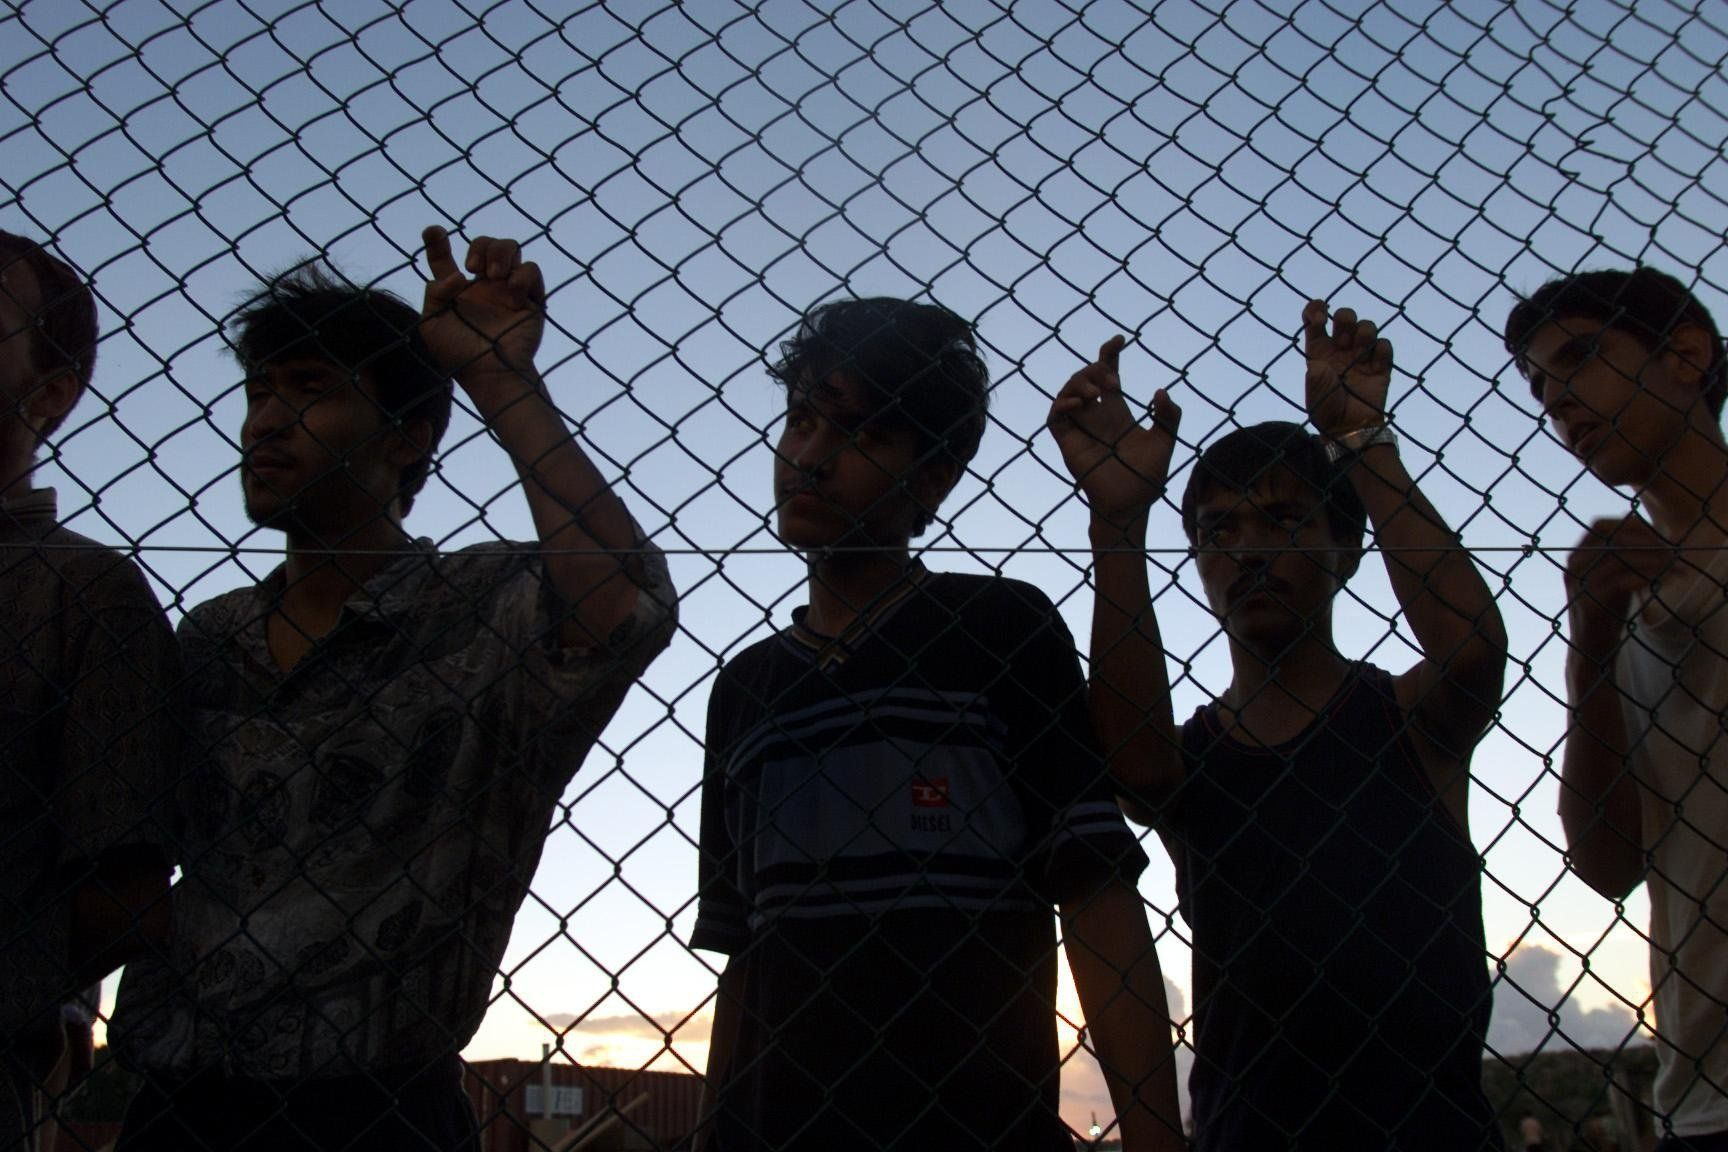 (AUSTRALIA & NEW ZEALAND OUT) Asylum seekers on their first day in the compound at Nauru after their long voyages on the Tampa, Aceng and Manoora, 19 September 2001. The AGE Picture by ANGELA WYLIE (Photo by Fairfax Media/Fairfax Media via Getty Images)